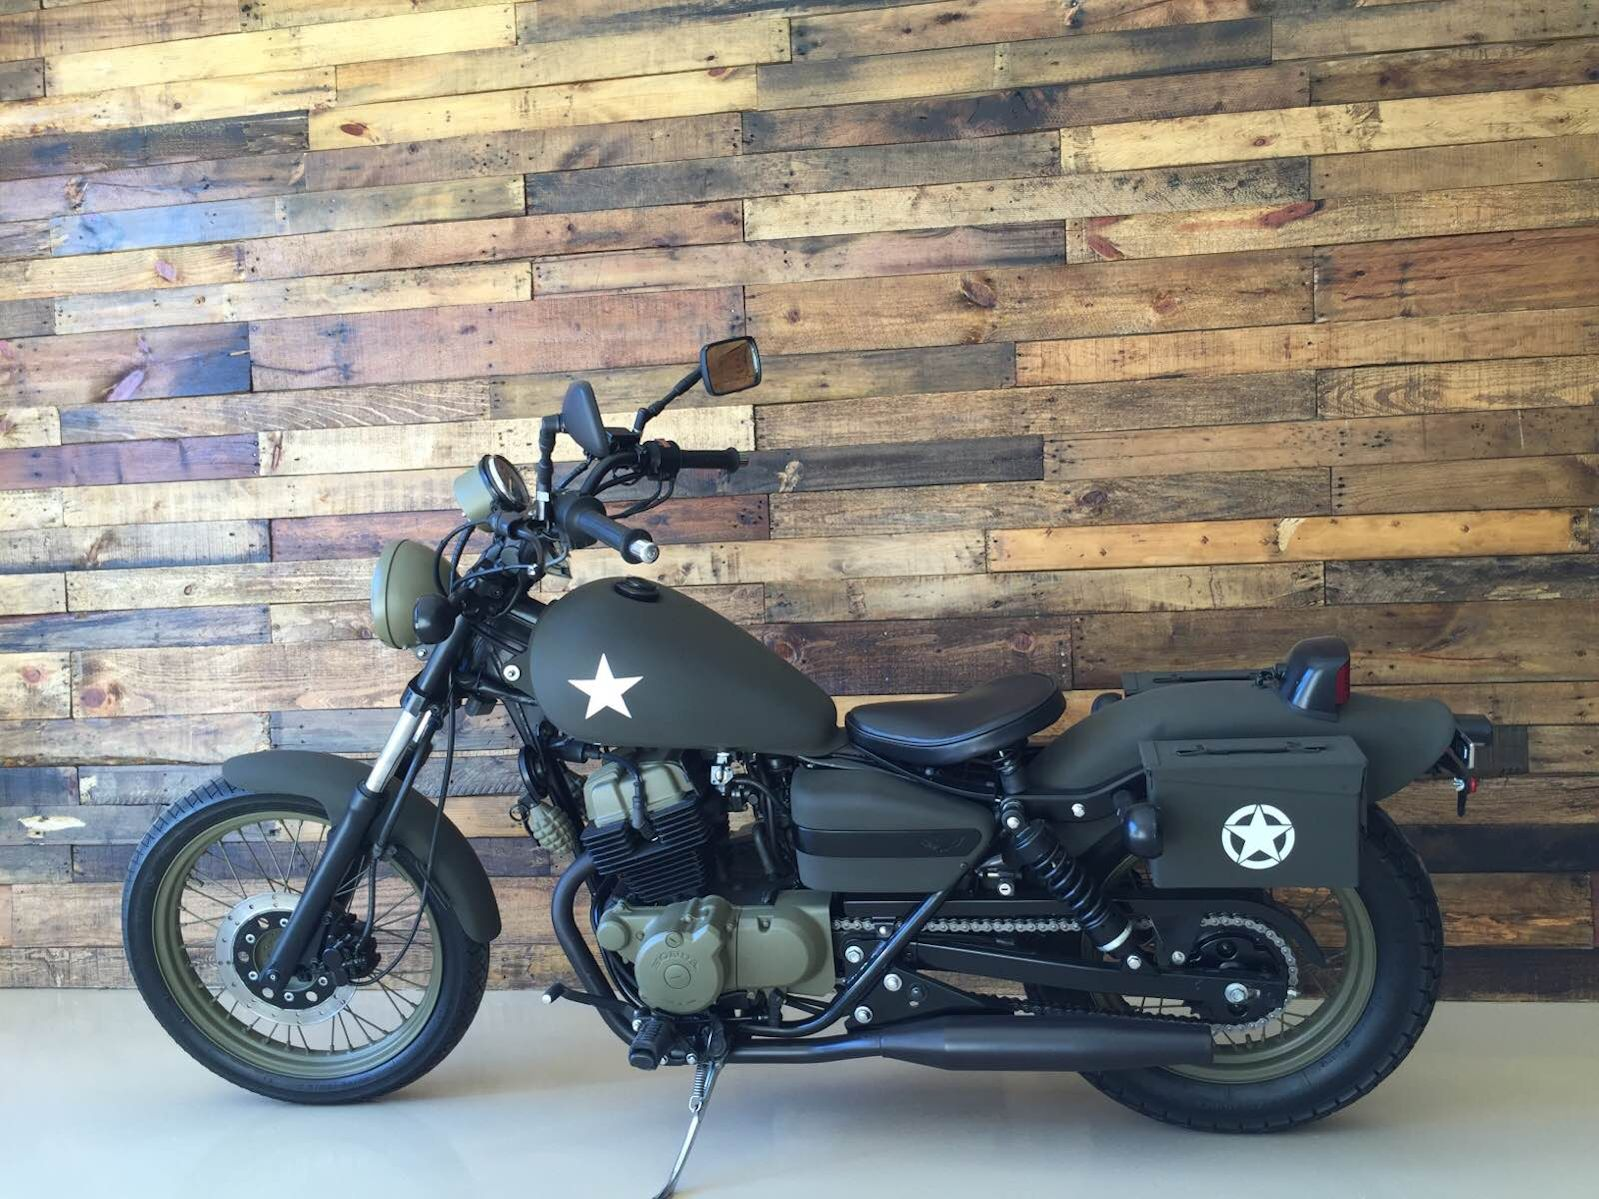 Army Motorcycle